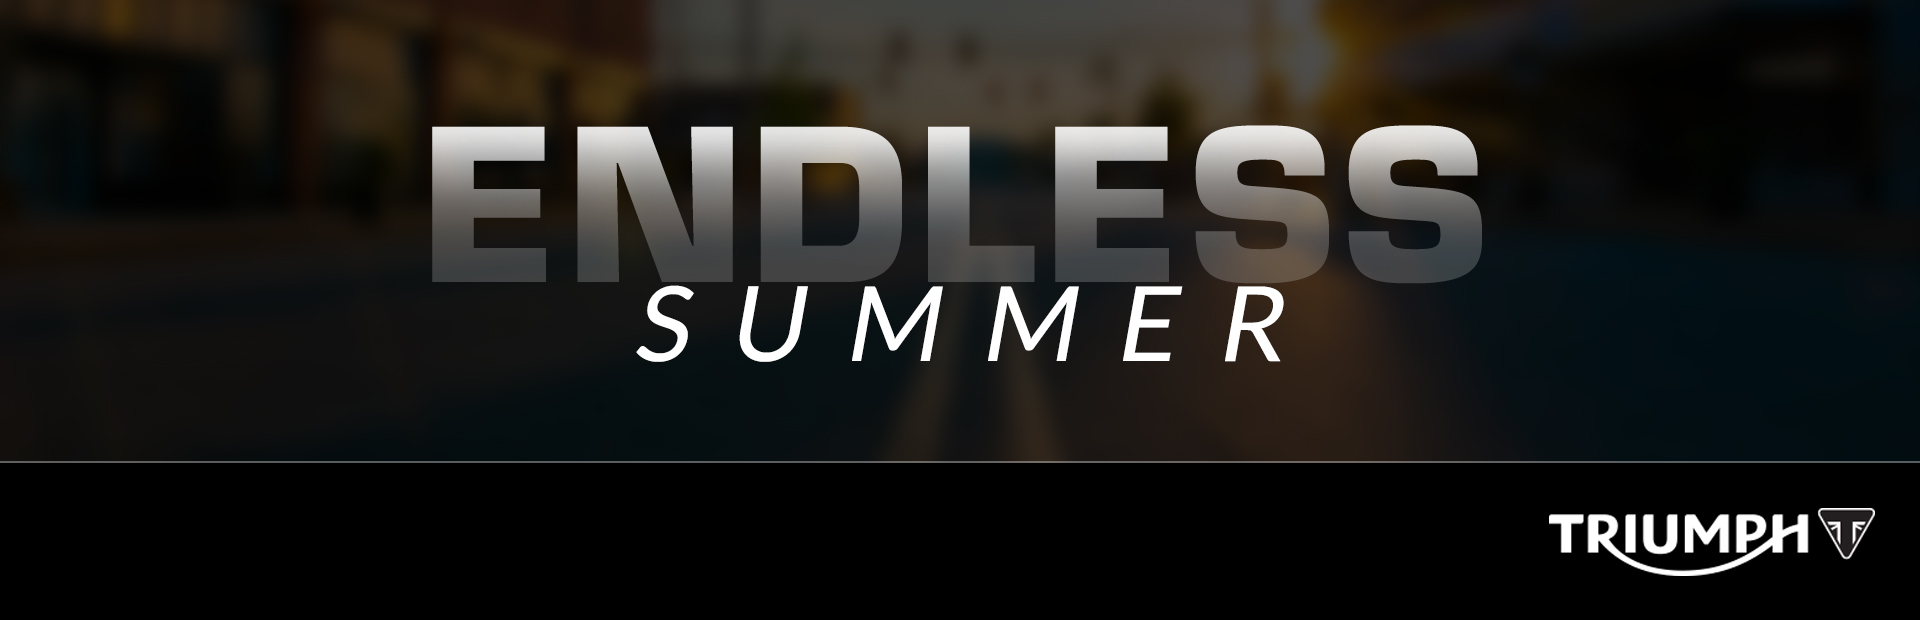 Triumph: Endless Summer Promotion